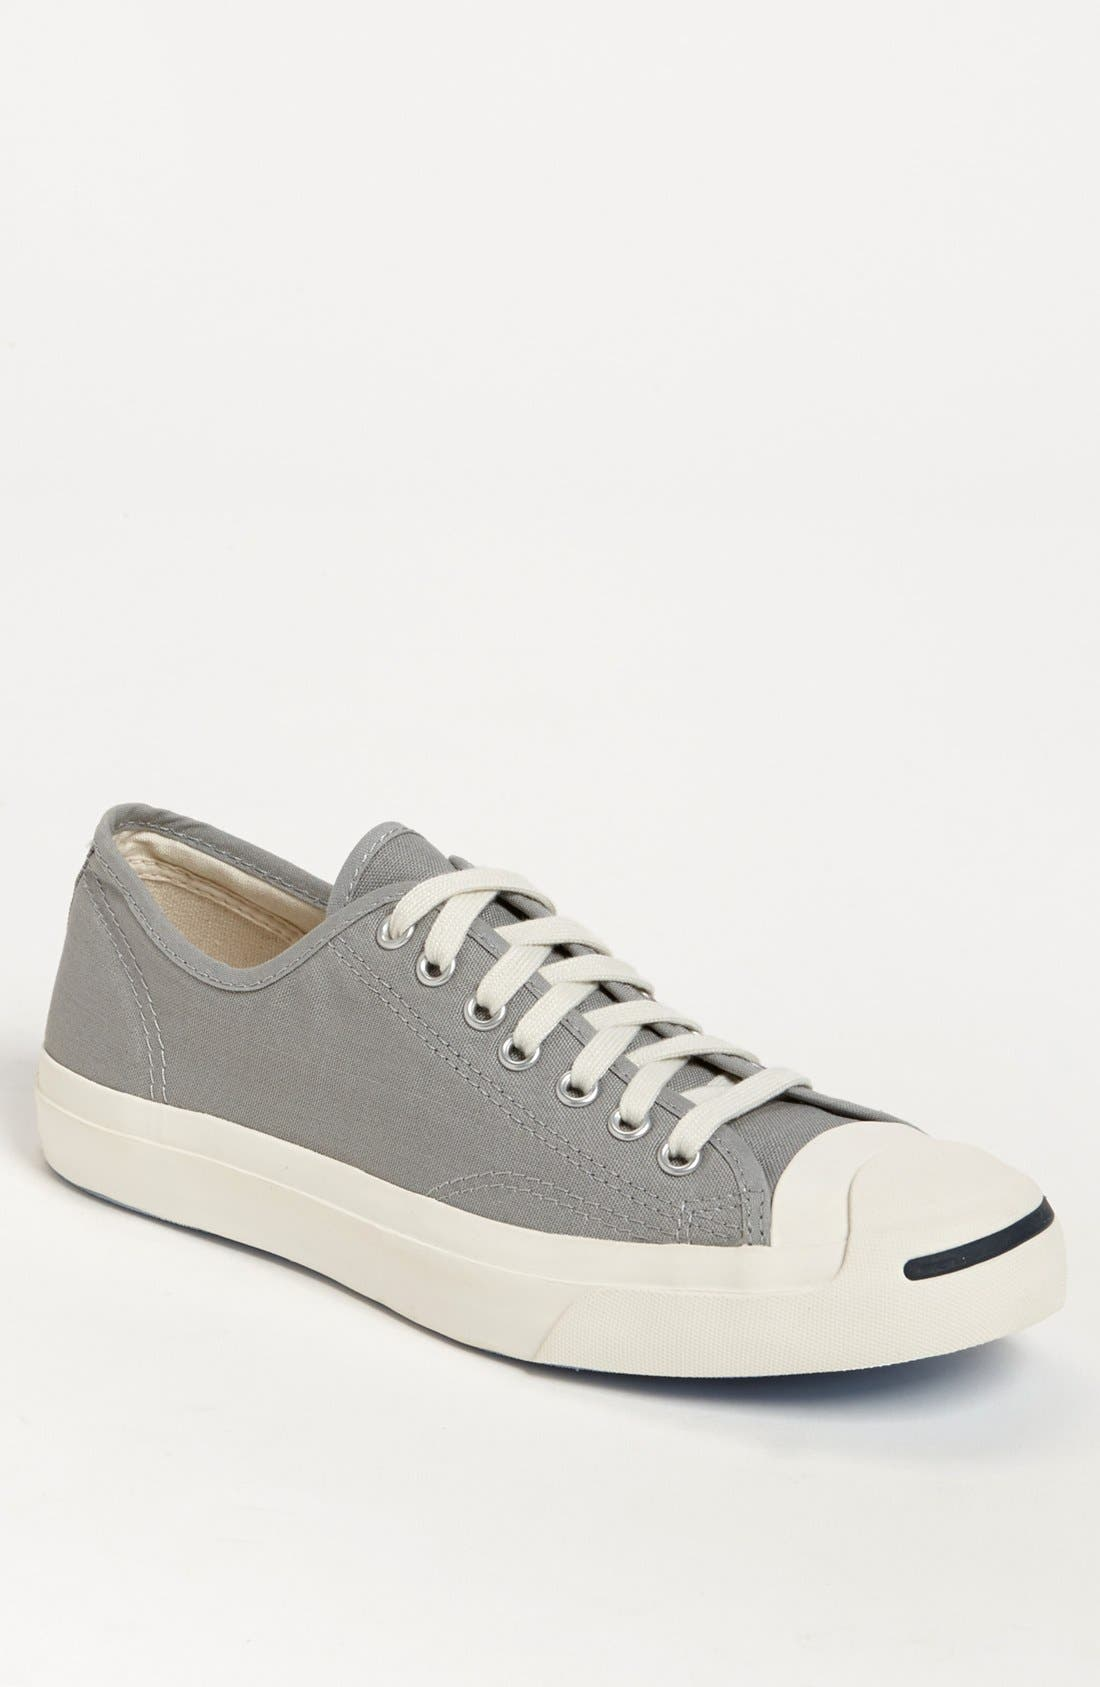 Main Image - Converse 'Jack Purcell LTT' Sneaker (Men)